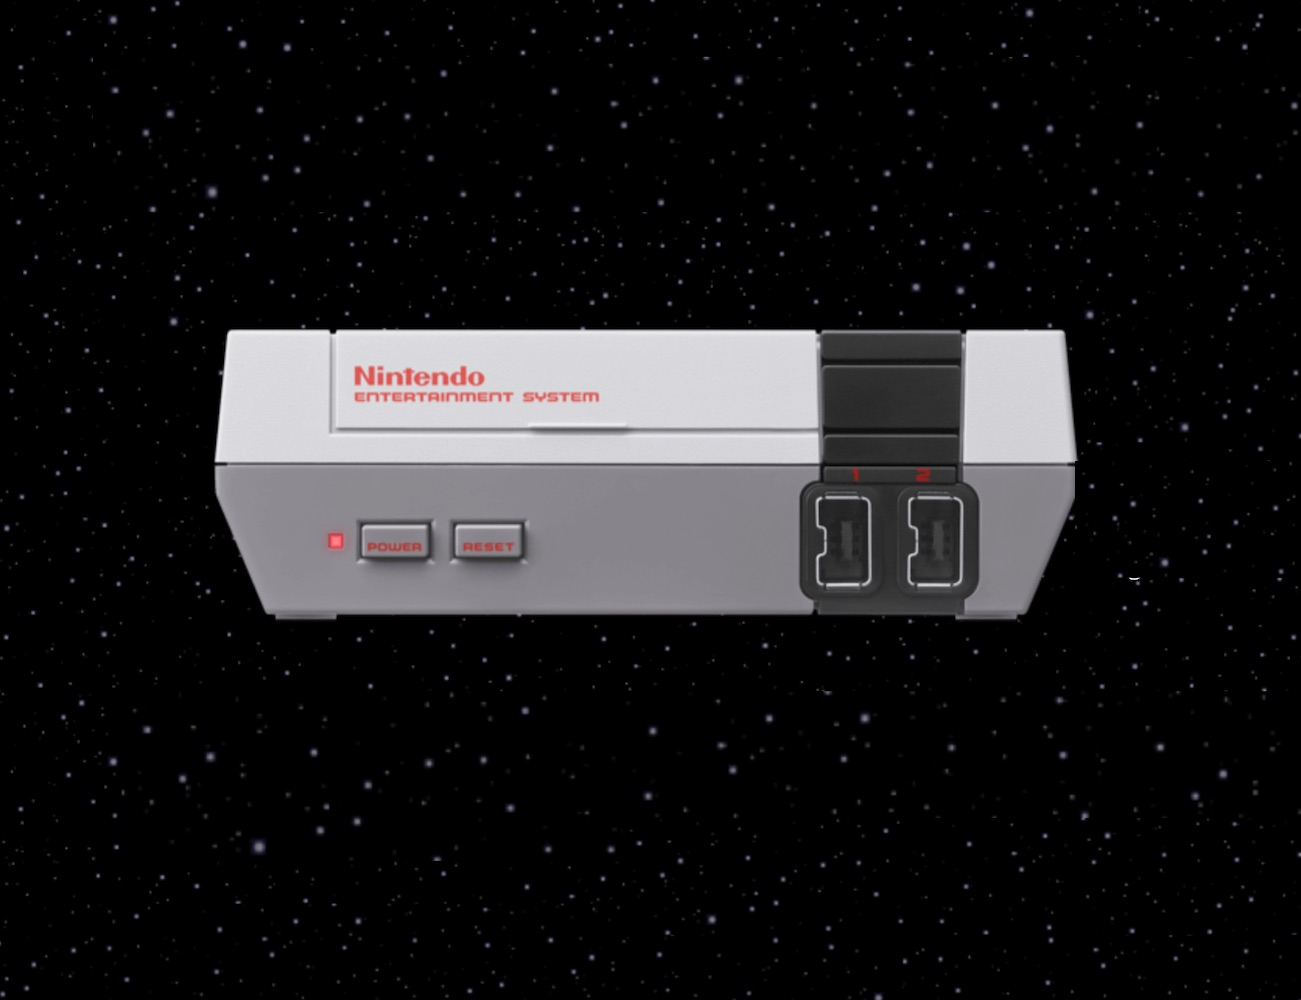 Nintendo+Entertainment+System+%26%238211%3B+NES+Classic+Edition